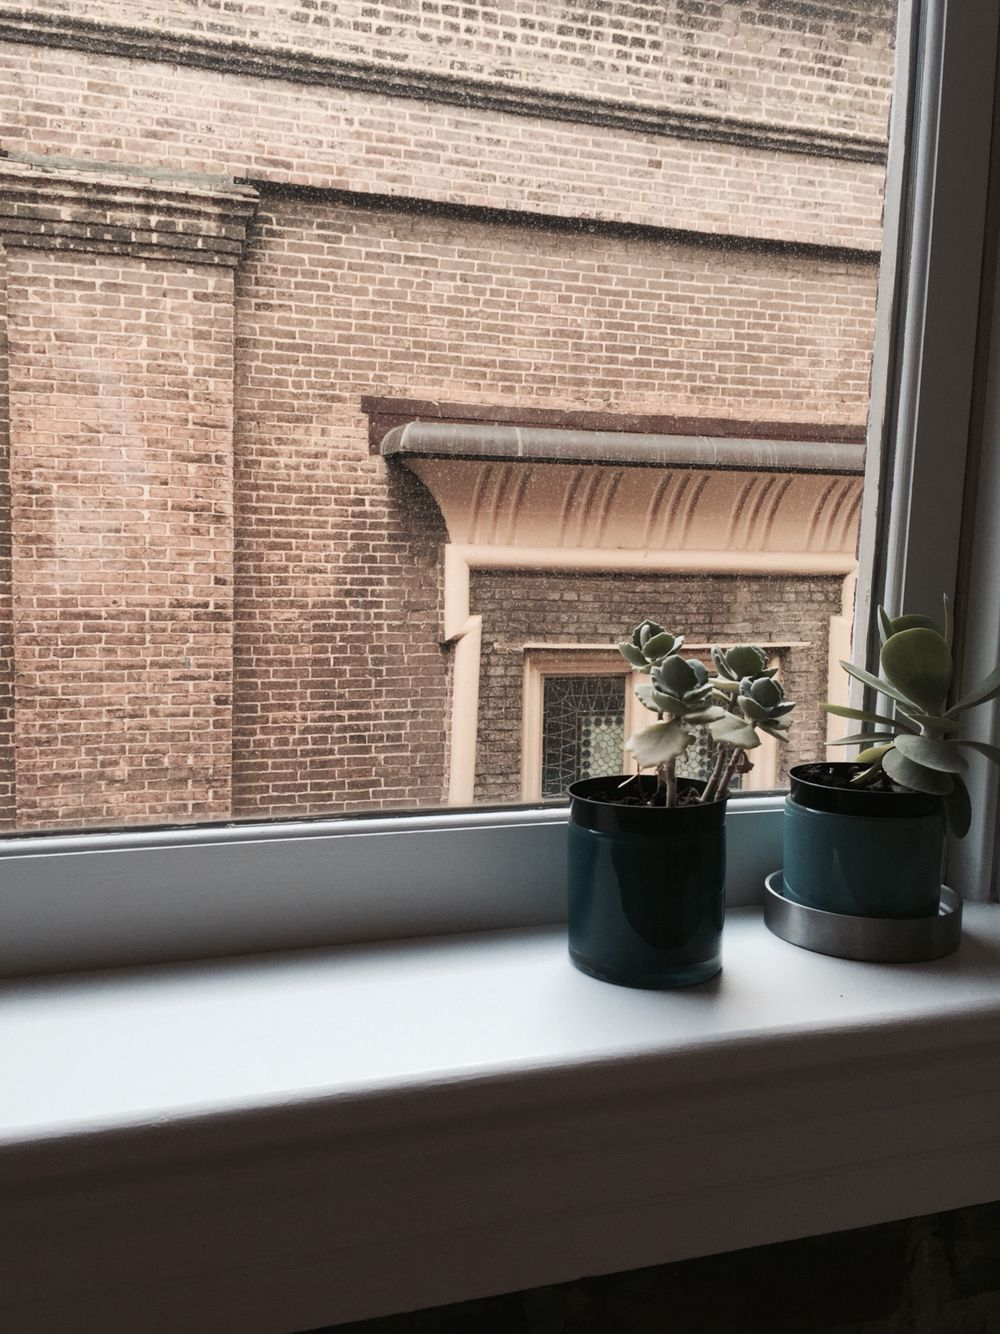 Succulents and window seals.